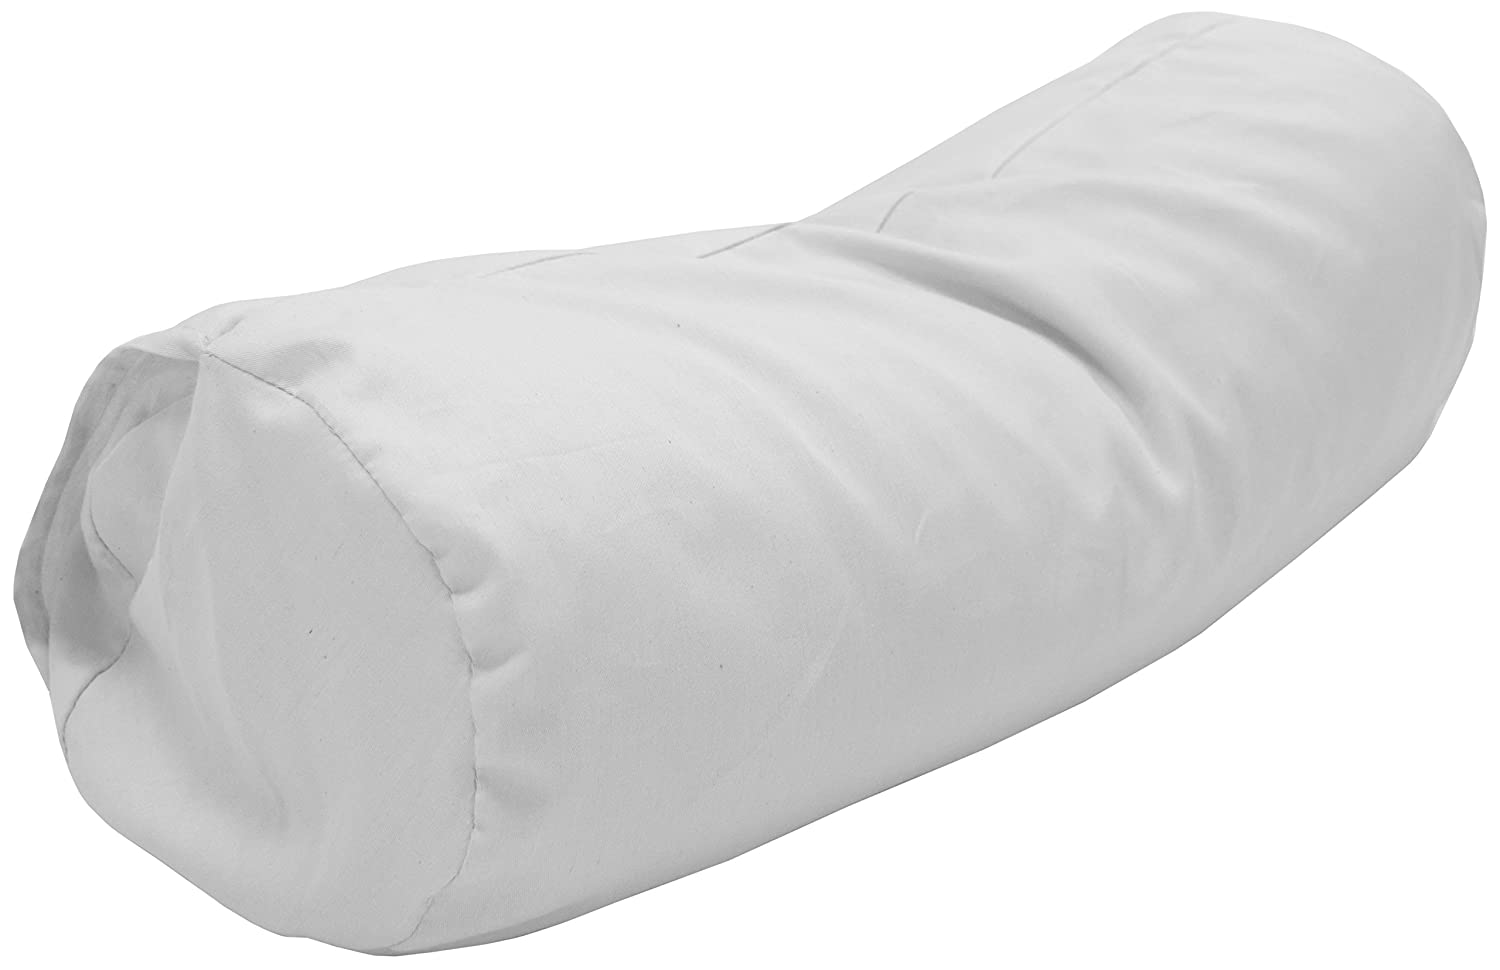 ORG COT + KAPOK + WHITE ORG CASE NECK ROLL w Case - 6 x 16 Bean Products Queen Organic Kapok Pillow + Natural Org Case - 20  x 30  - Organic Cotton Zippered Shell - Made in USA